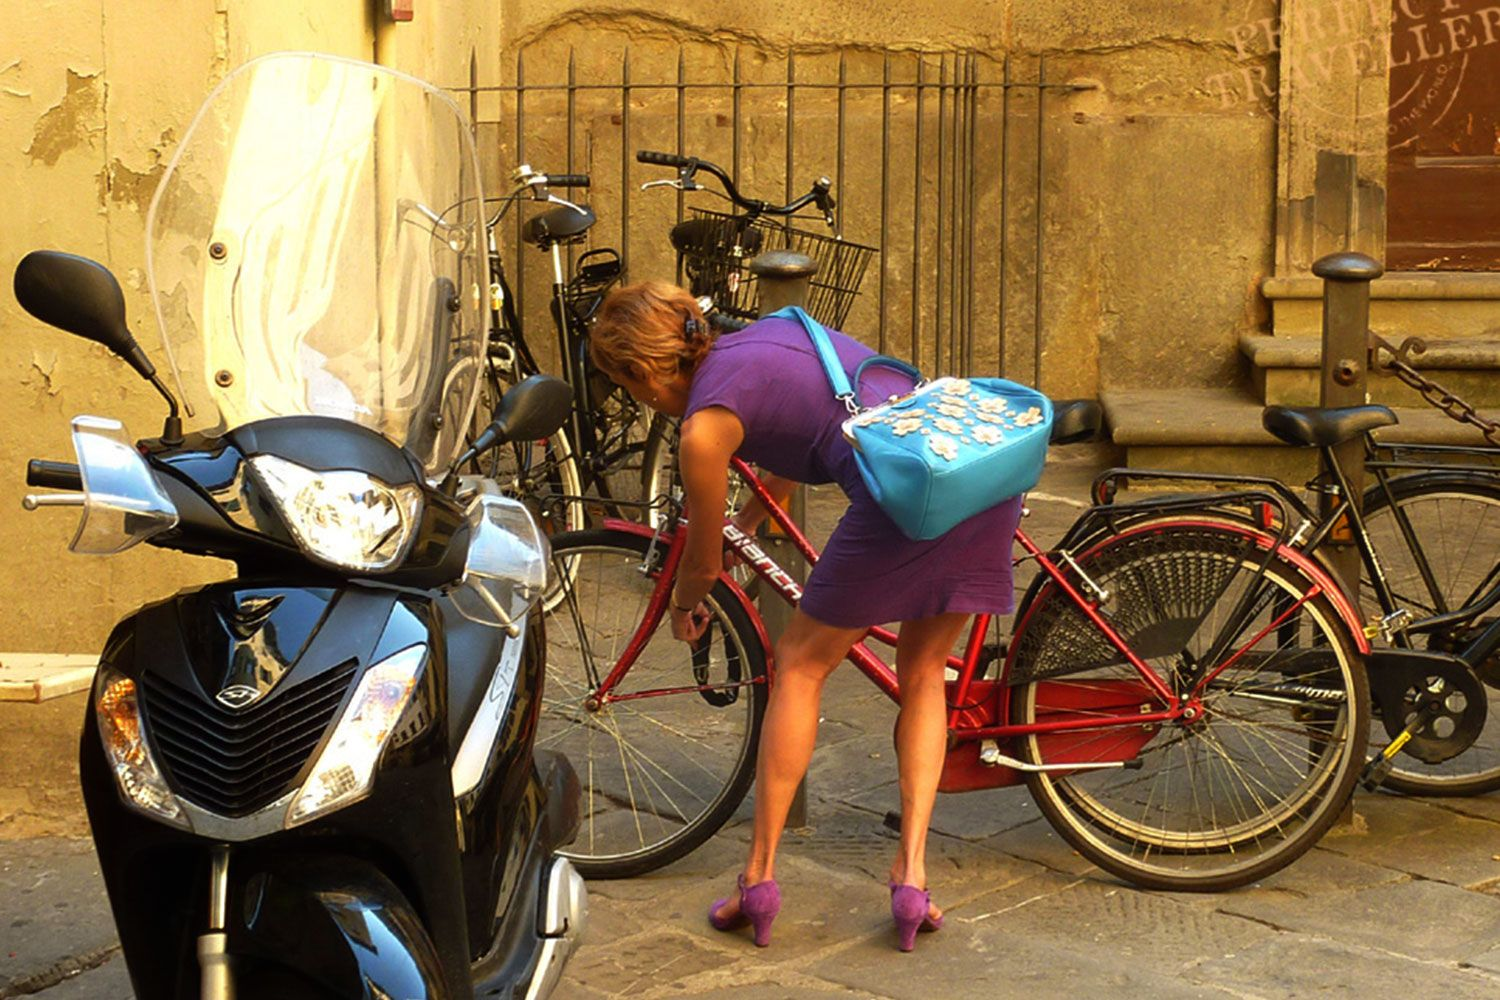 Who needs a car in Florence when you can ride your bike